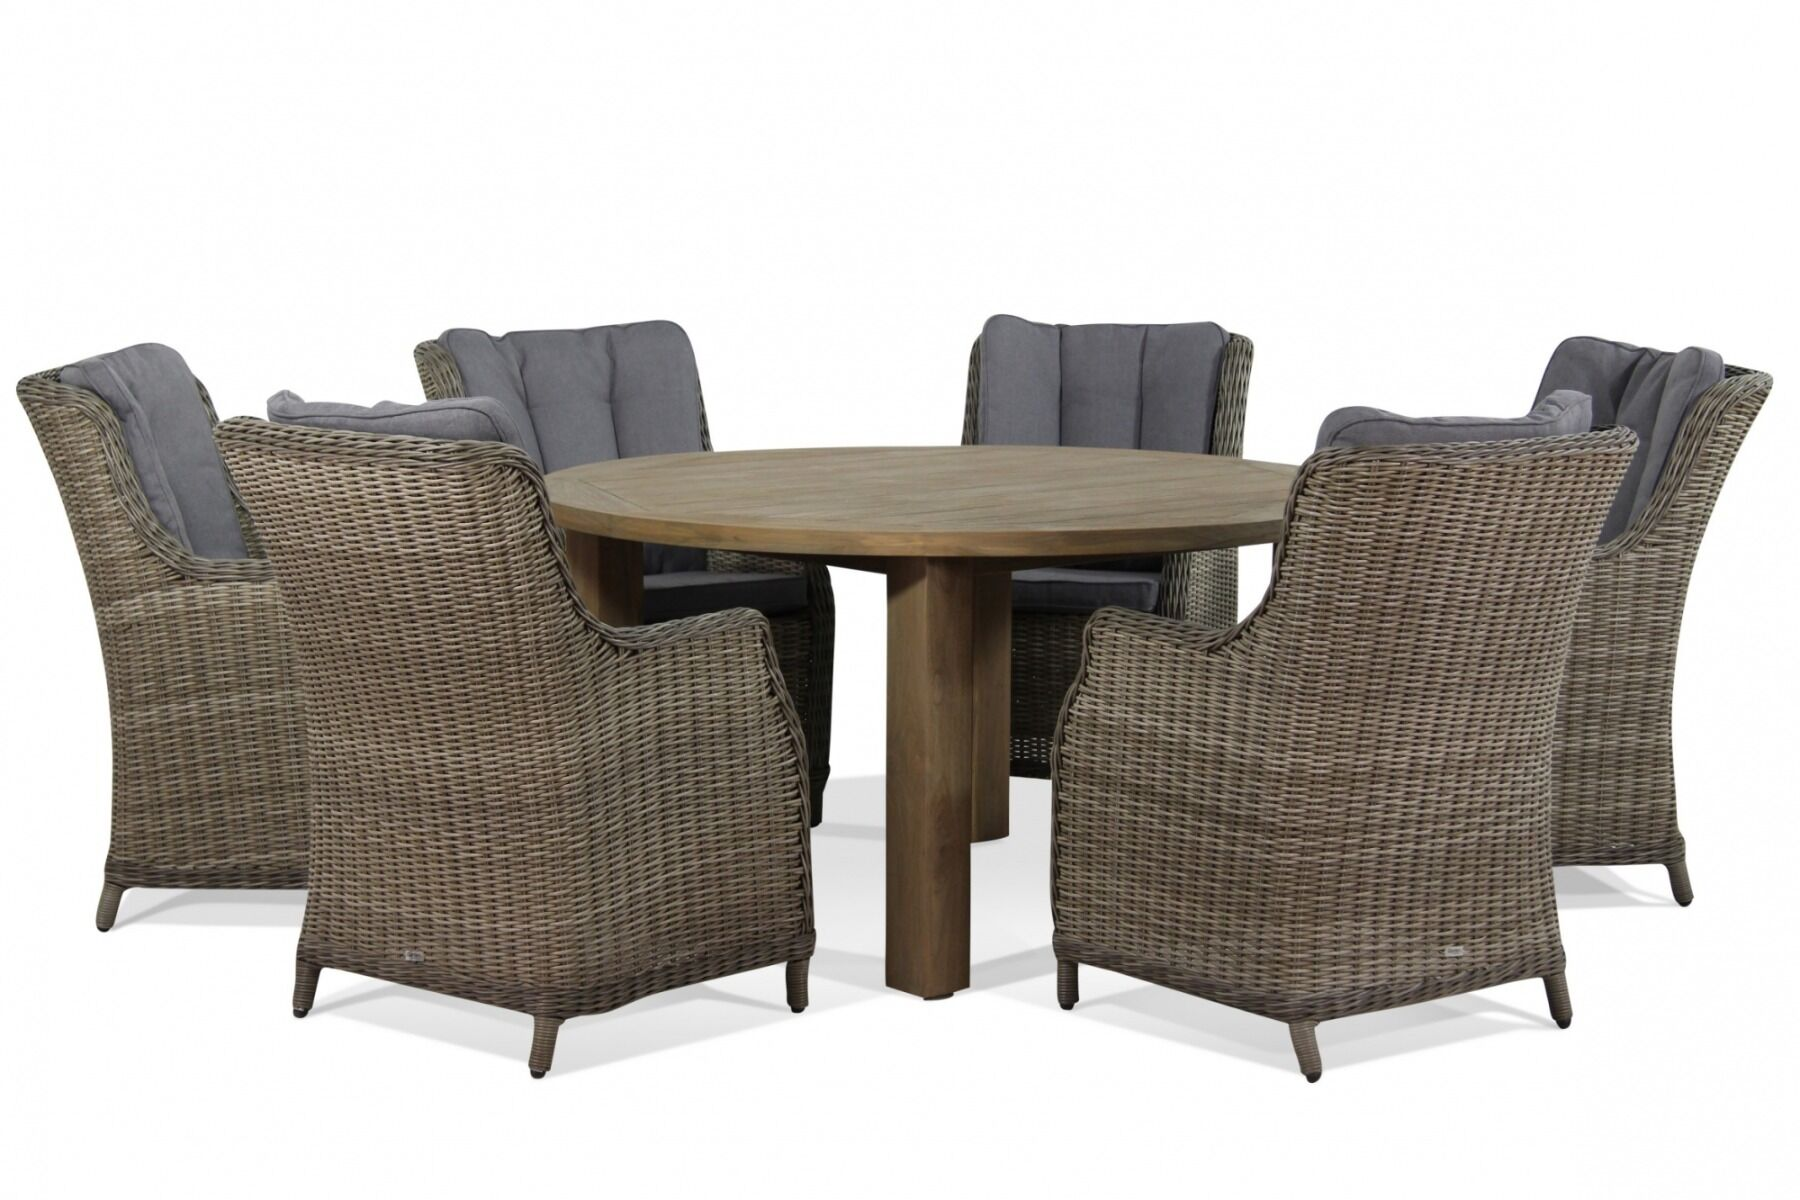 Tuinset Oxford Collection.Garden Collections Buckingham Oxford 150 Cm Dining Tuinset 7 Delig